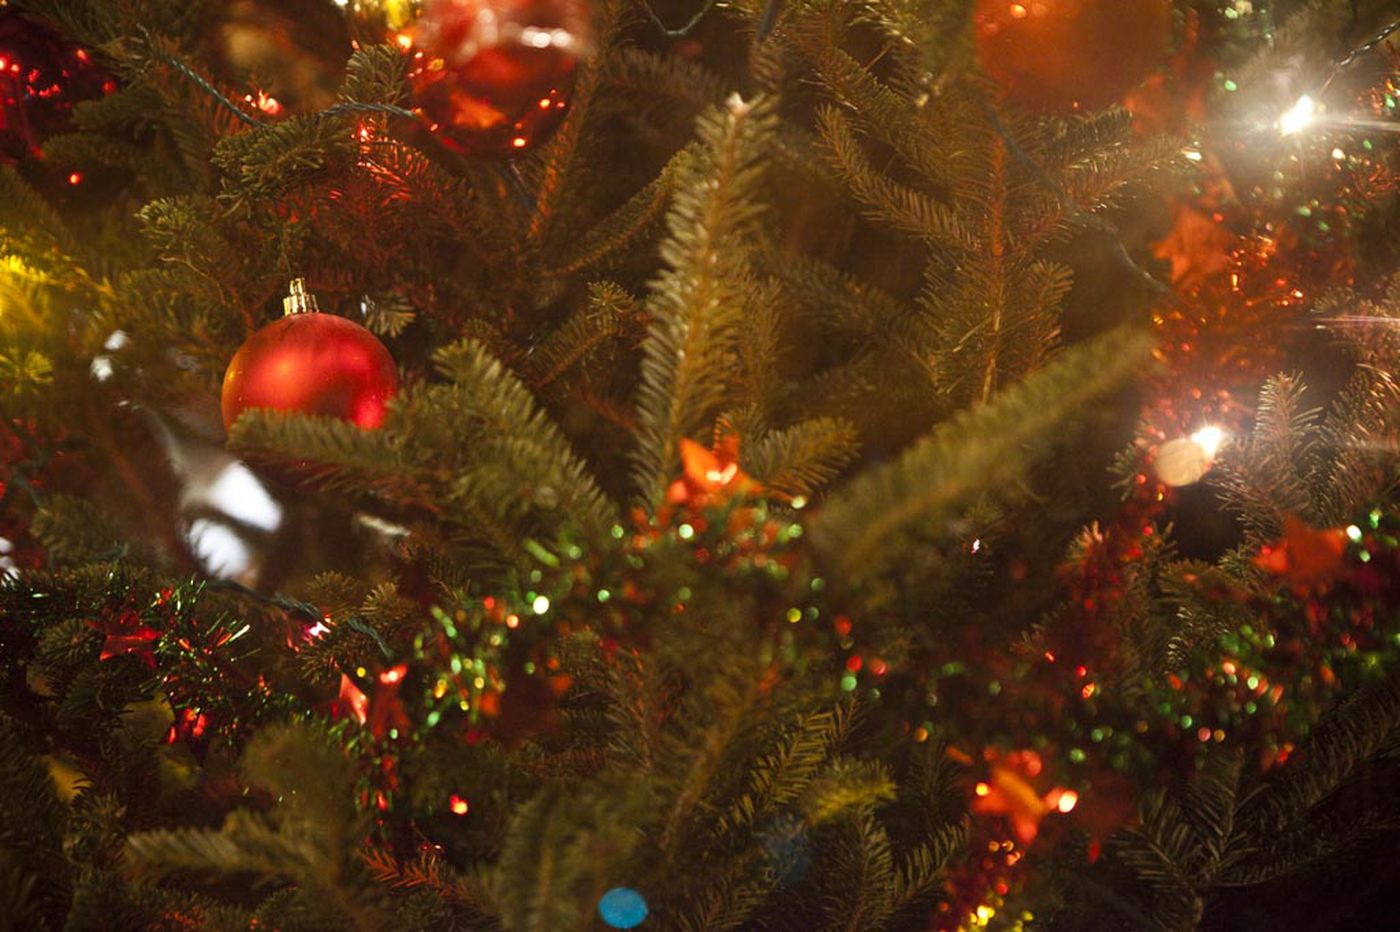 Growing Concerns: Christmas trees can give enjoyment right through spring